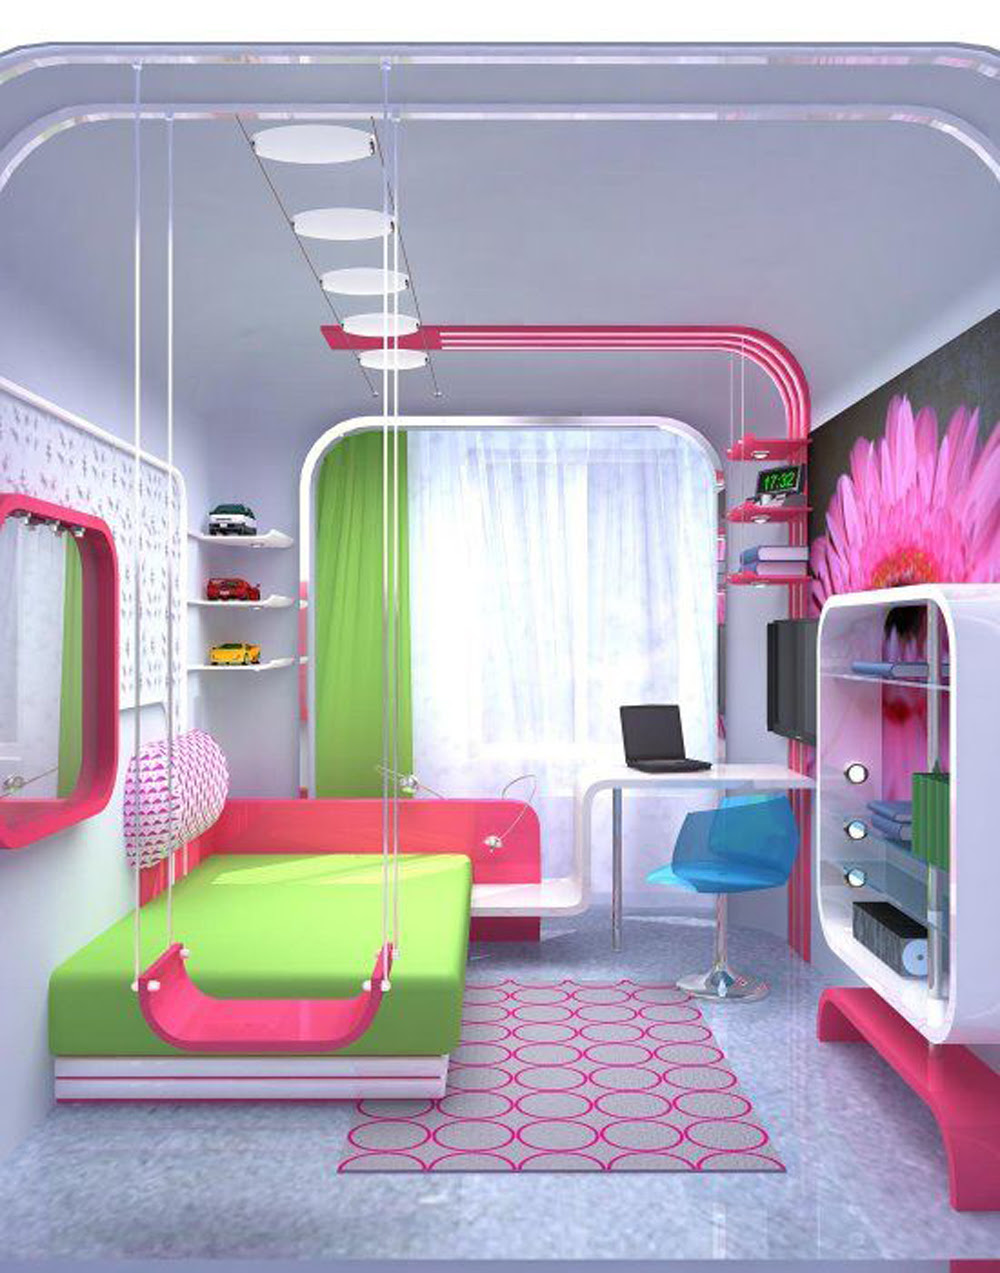 Stylish colorful bedrooms for girls - AllArchitectureDesigns